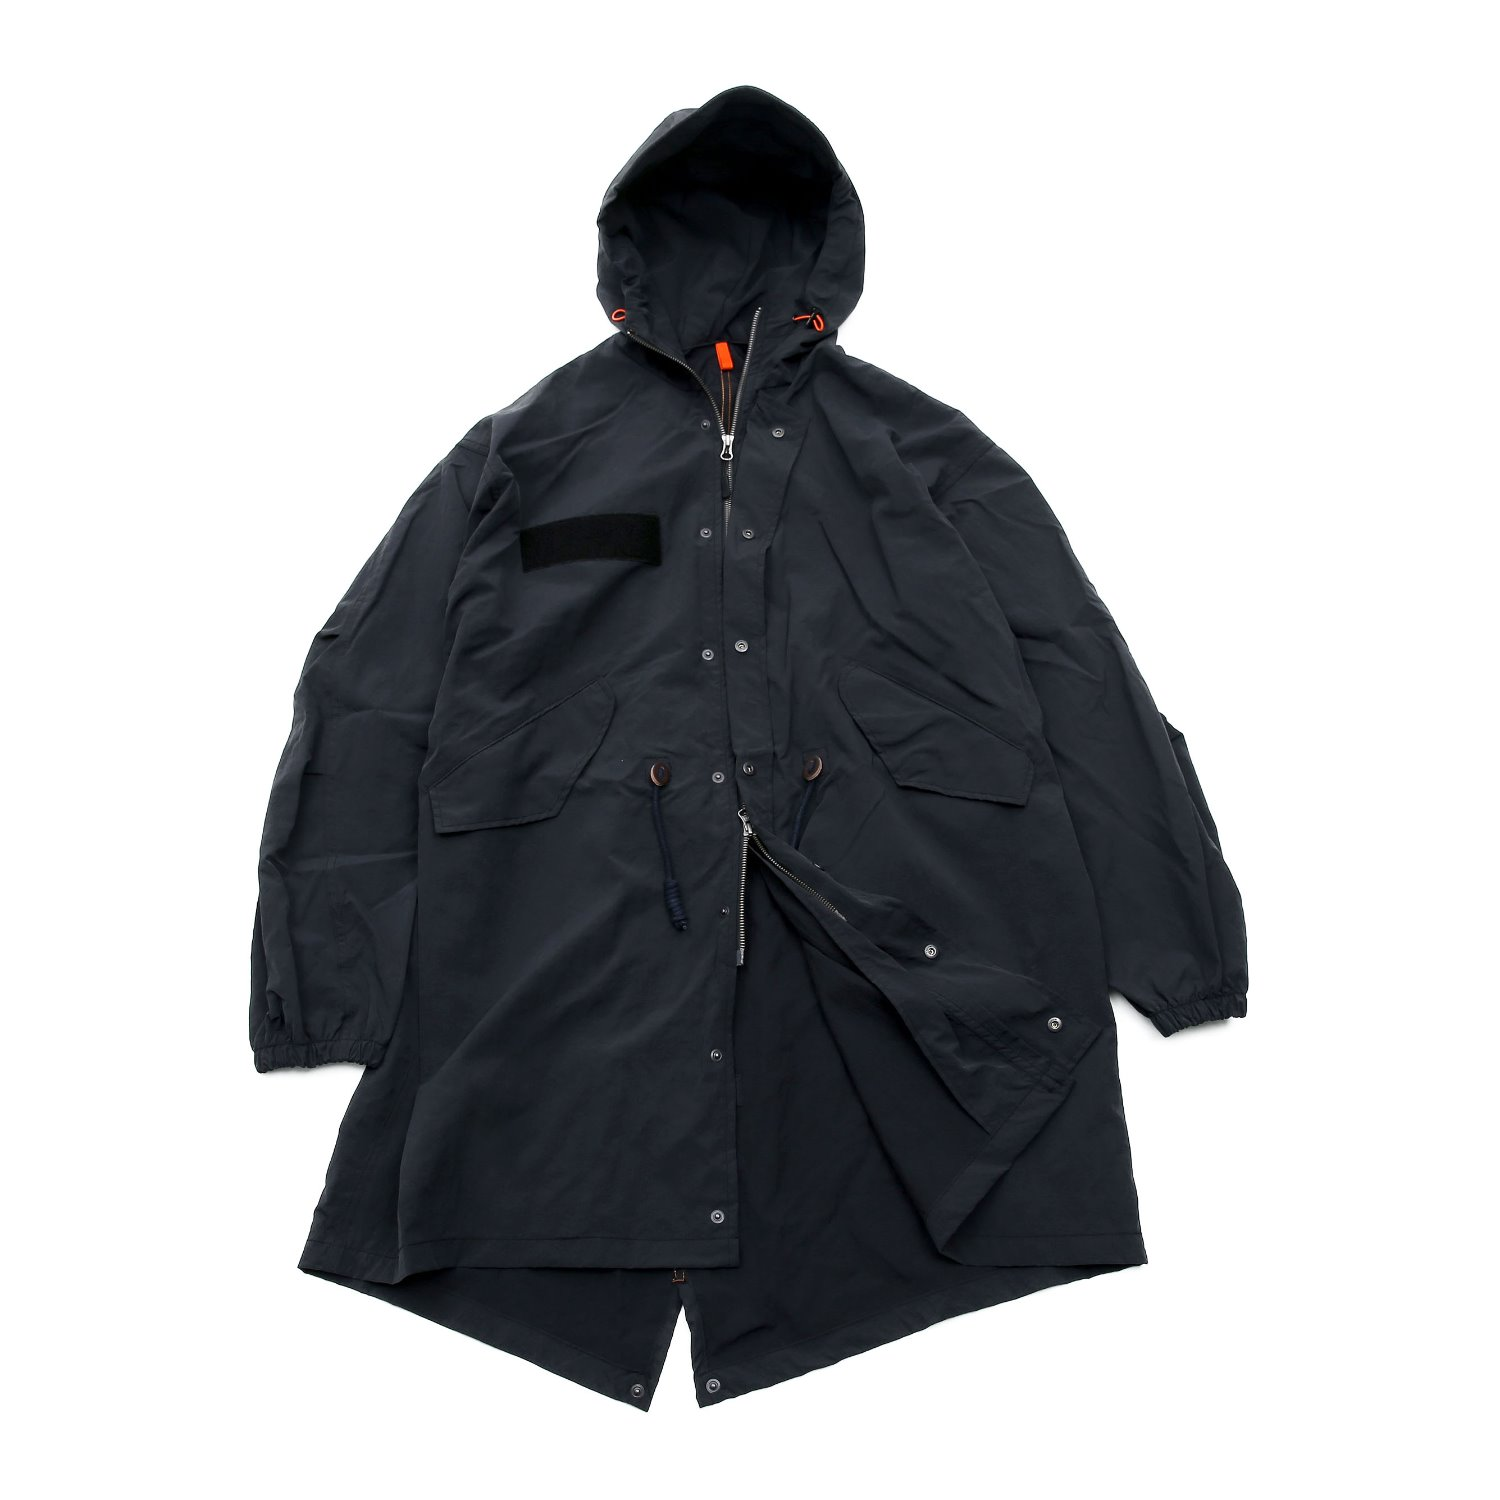 Steelwheels S-51 Nylon JKT (Black)